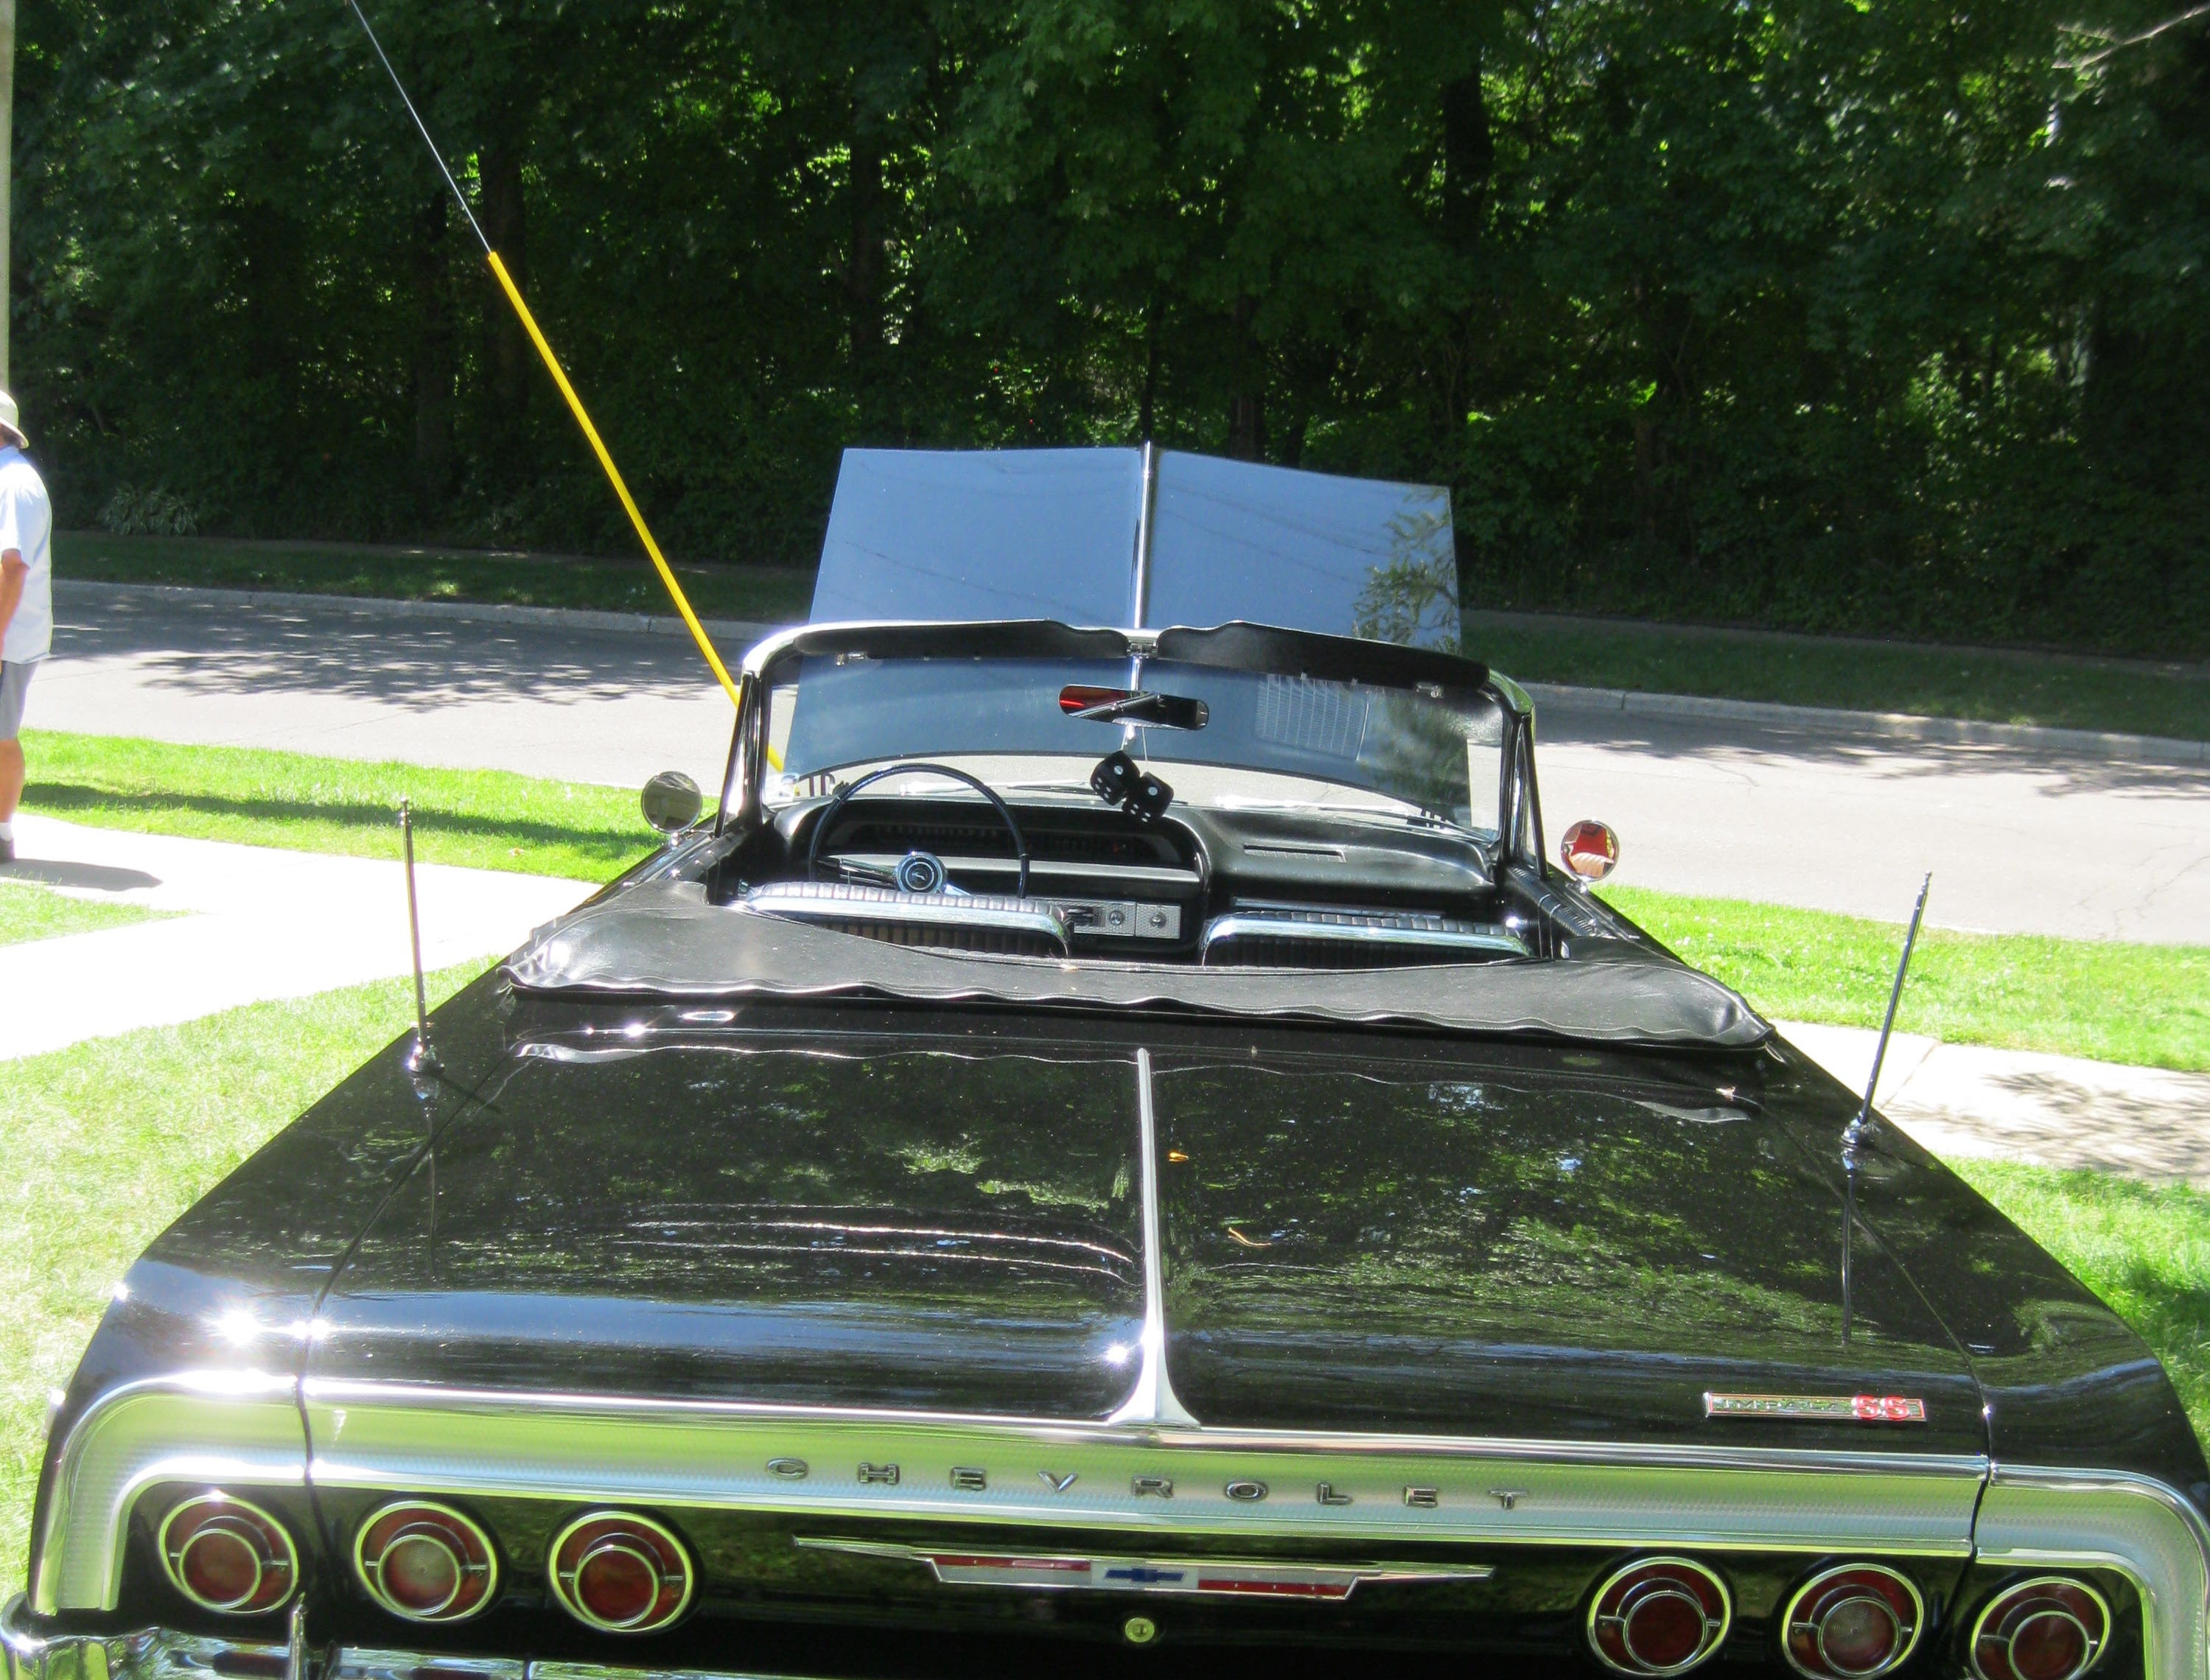 A 1964 Chevrolet Impala SS convertible owned by Victor Dragna of St. Clair Shores.